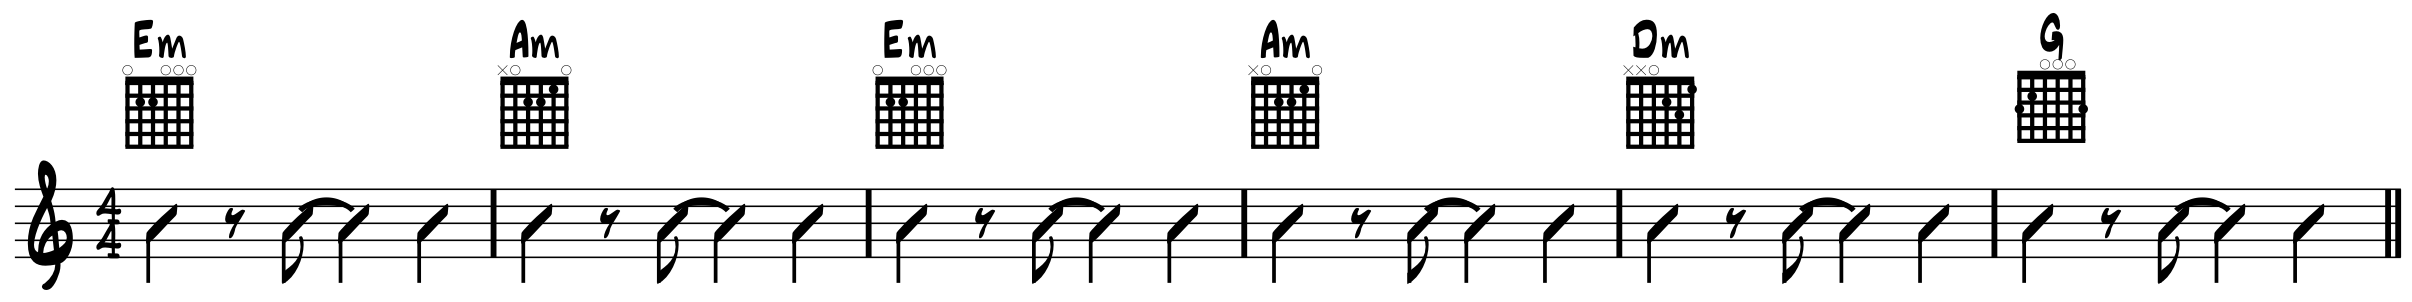 Can\'t Buy Me Love Chords: 3 Open-String Minor Chords in Action